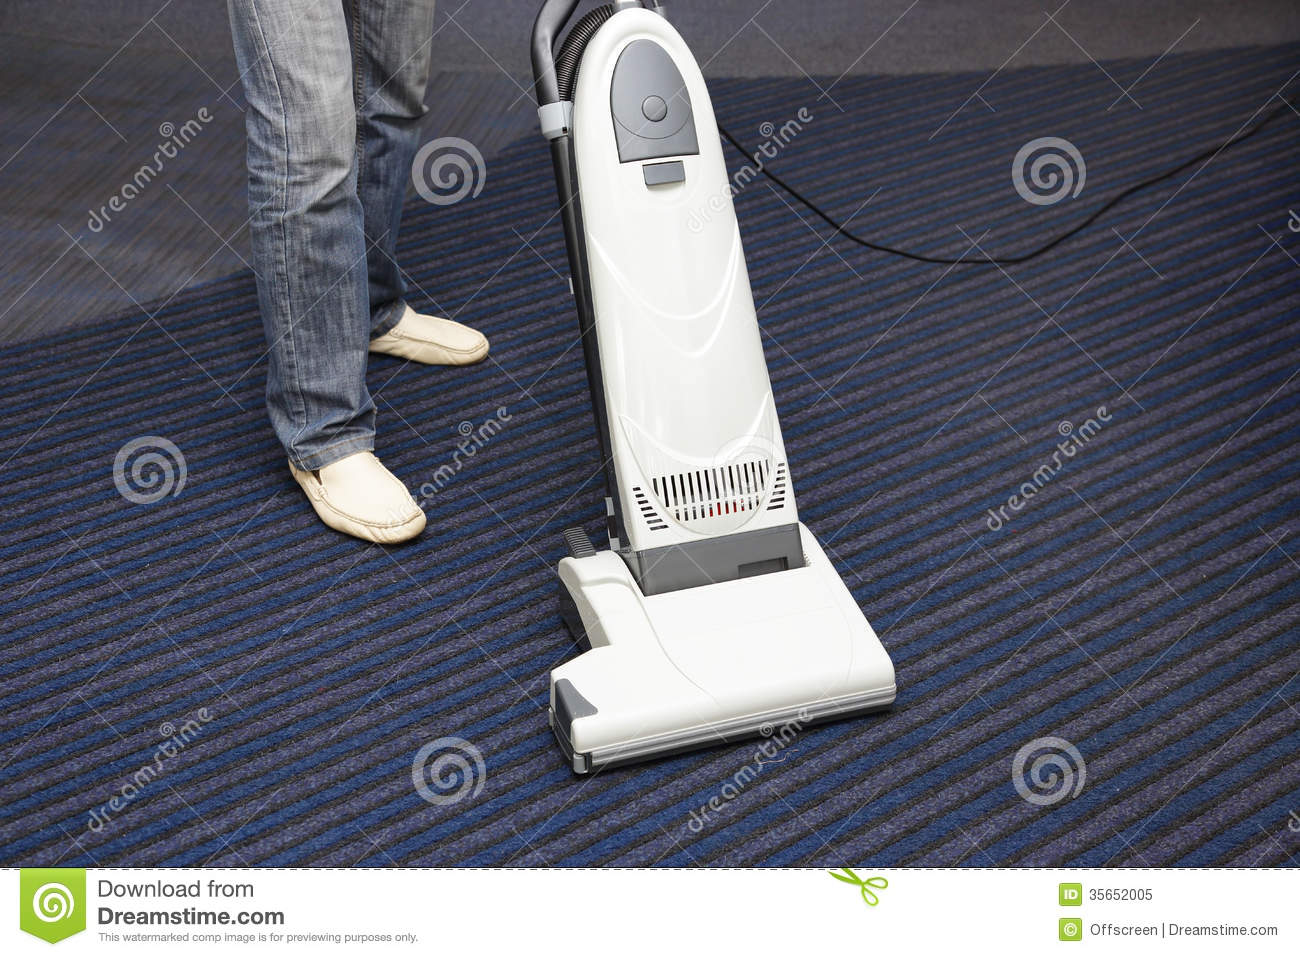 sheffield carpet cleaner with handheld vacuum instructions